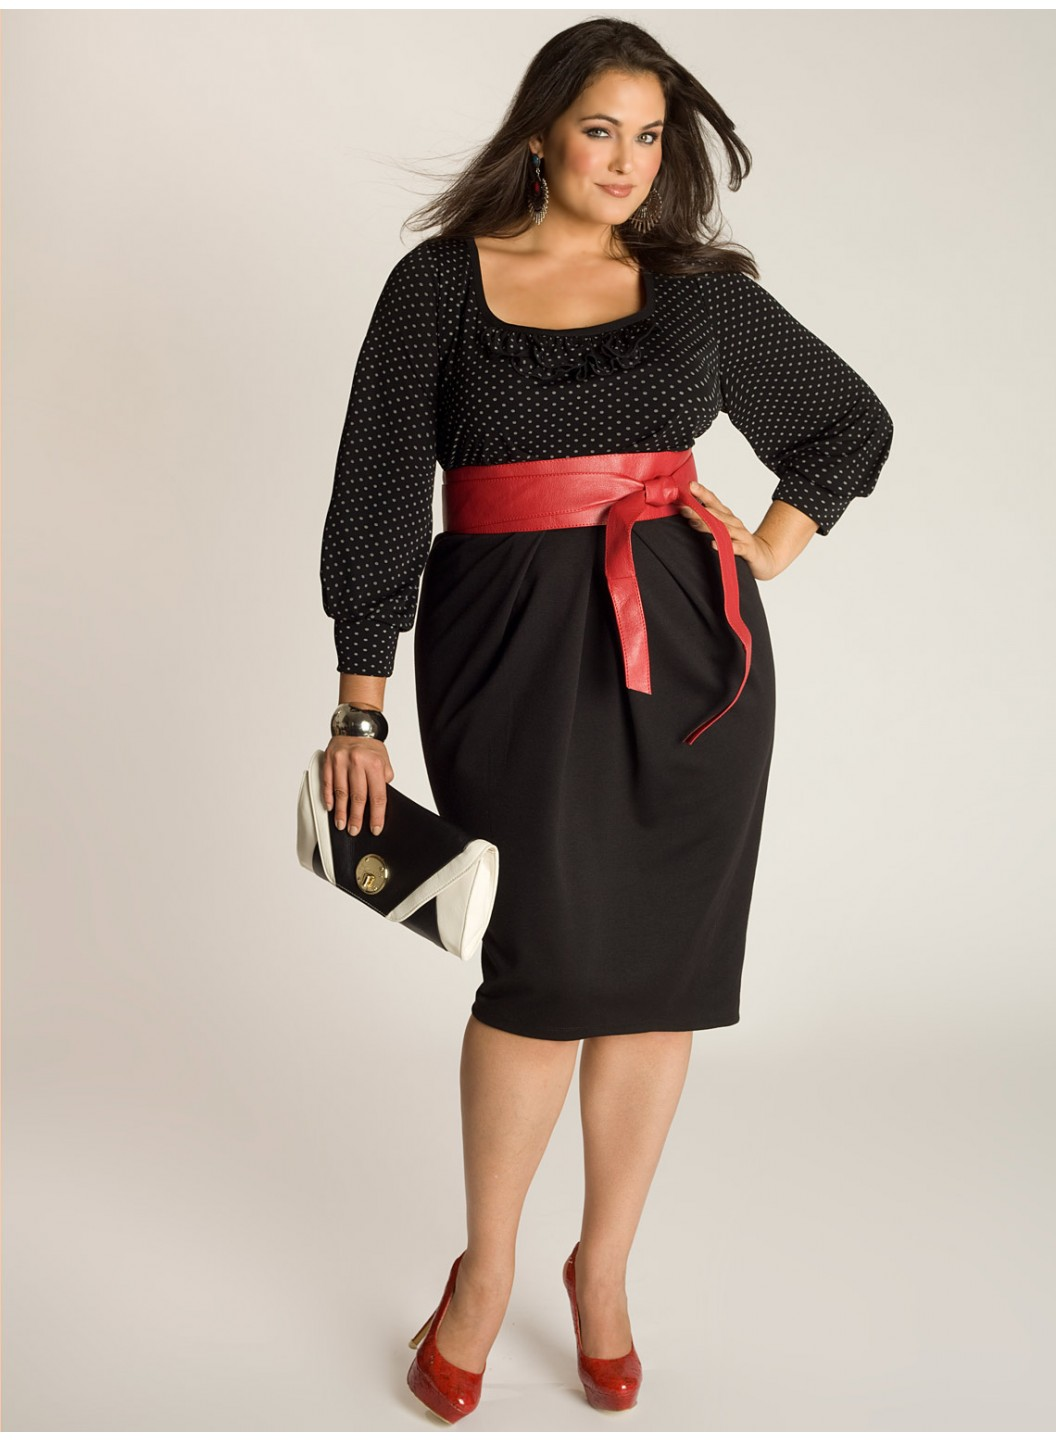 Dress barn plus size evening wear  Clothing for large ladies